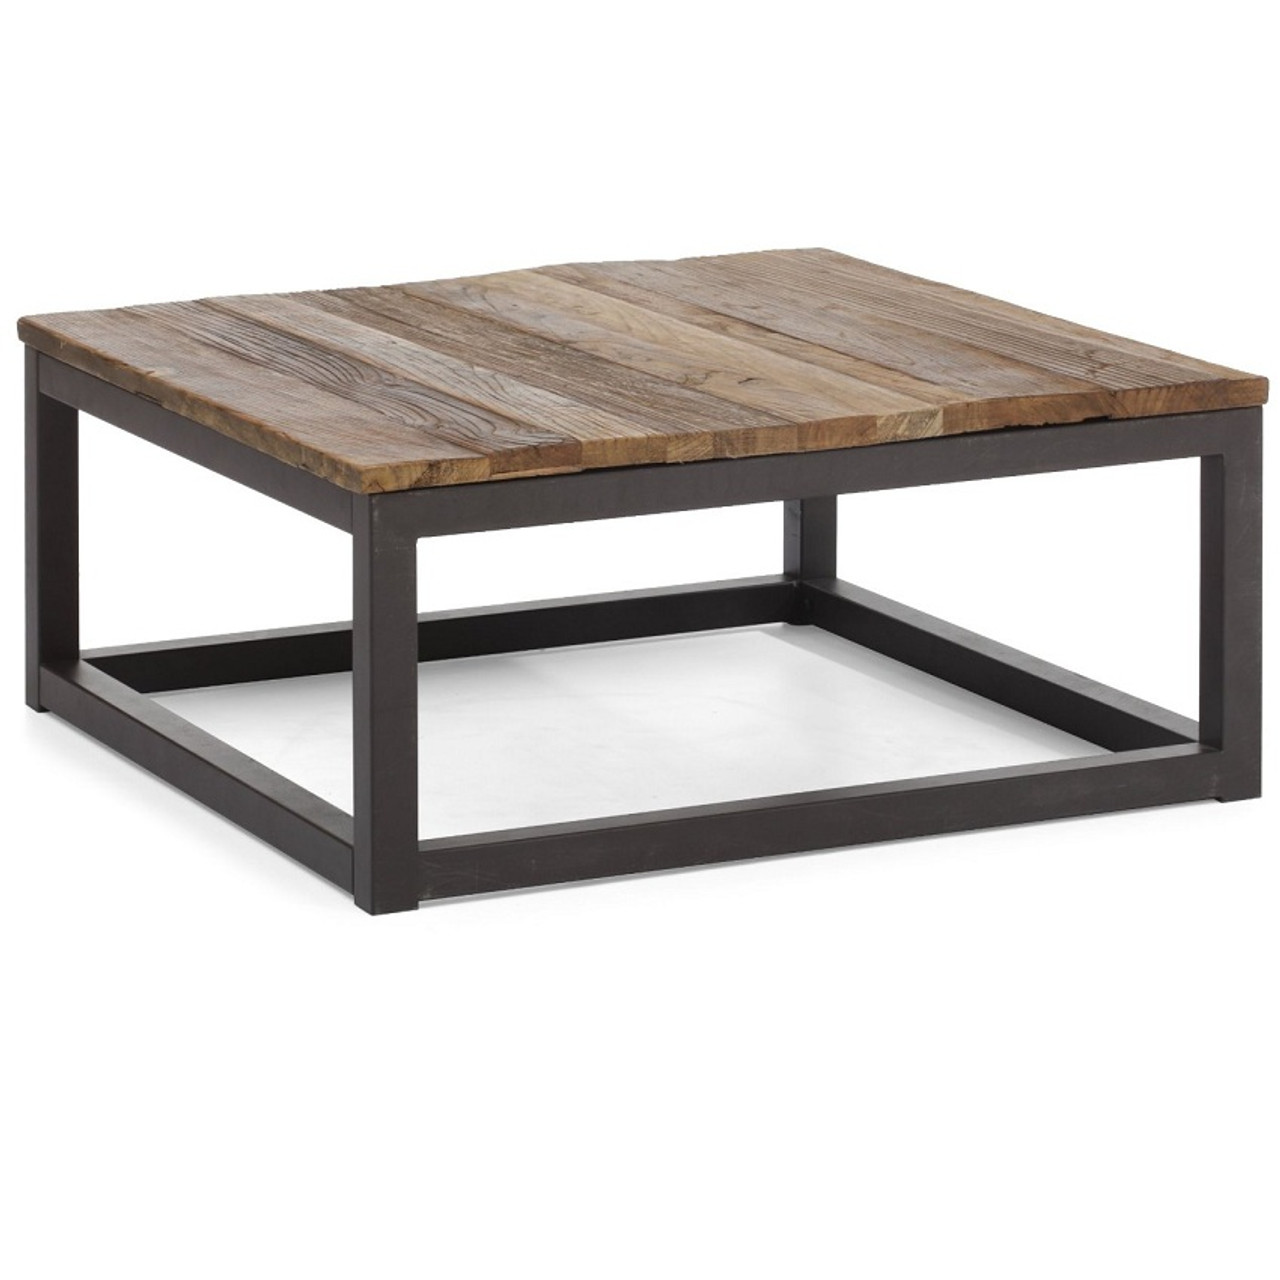 Civic Wood And Metal Square Coffee Table Zin Home